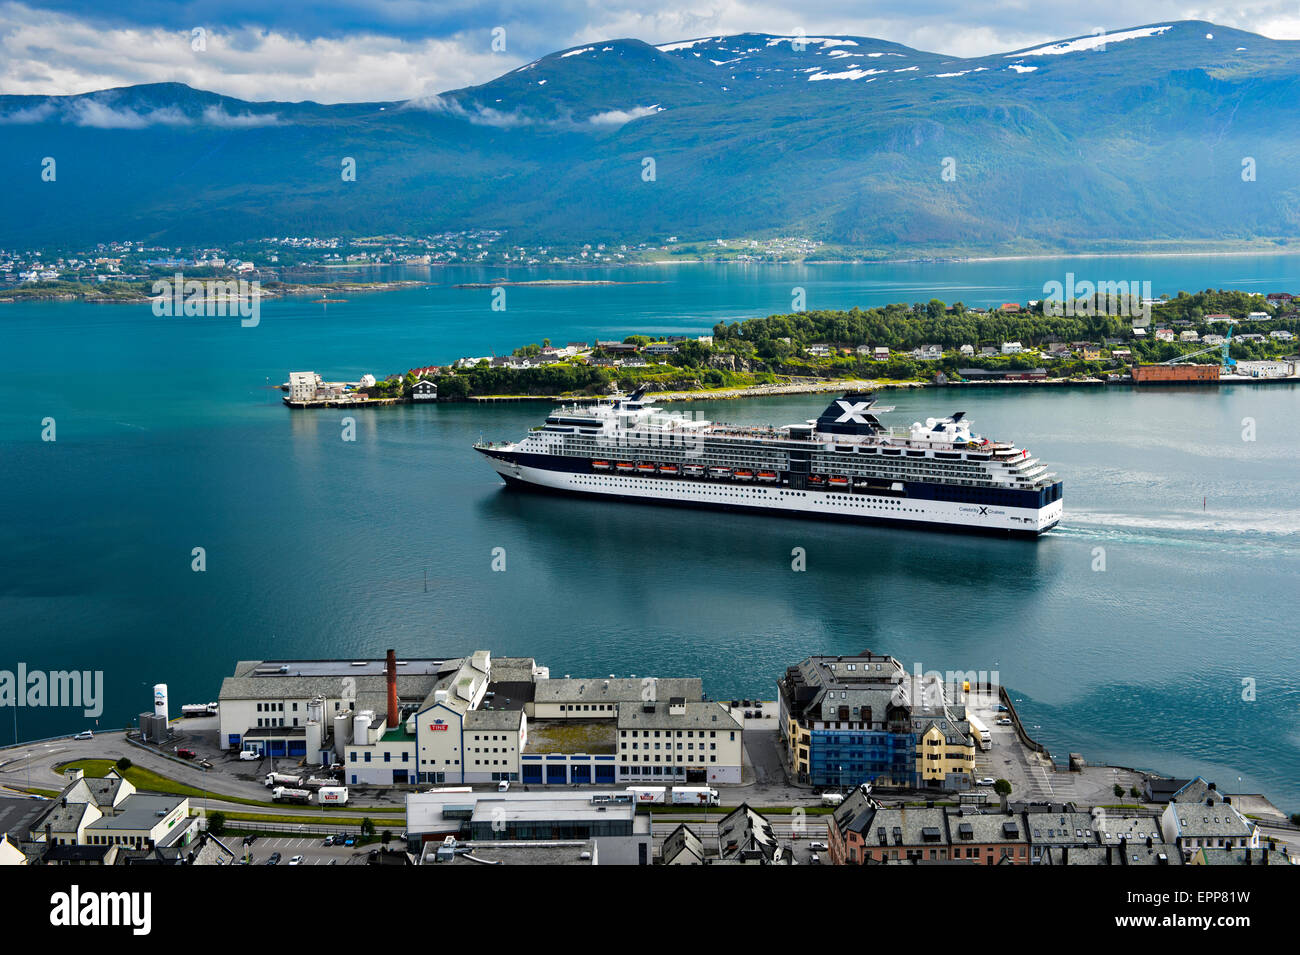 Cruiseliner Celebrity Celebration leaving the port of Alesund, Moere og Romsdal, Norway - Stock Image